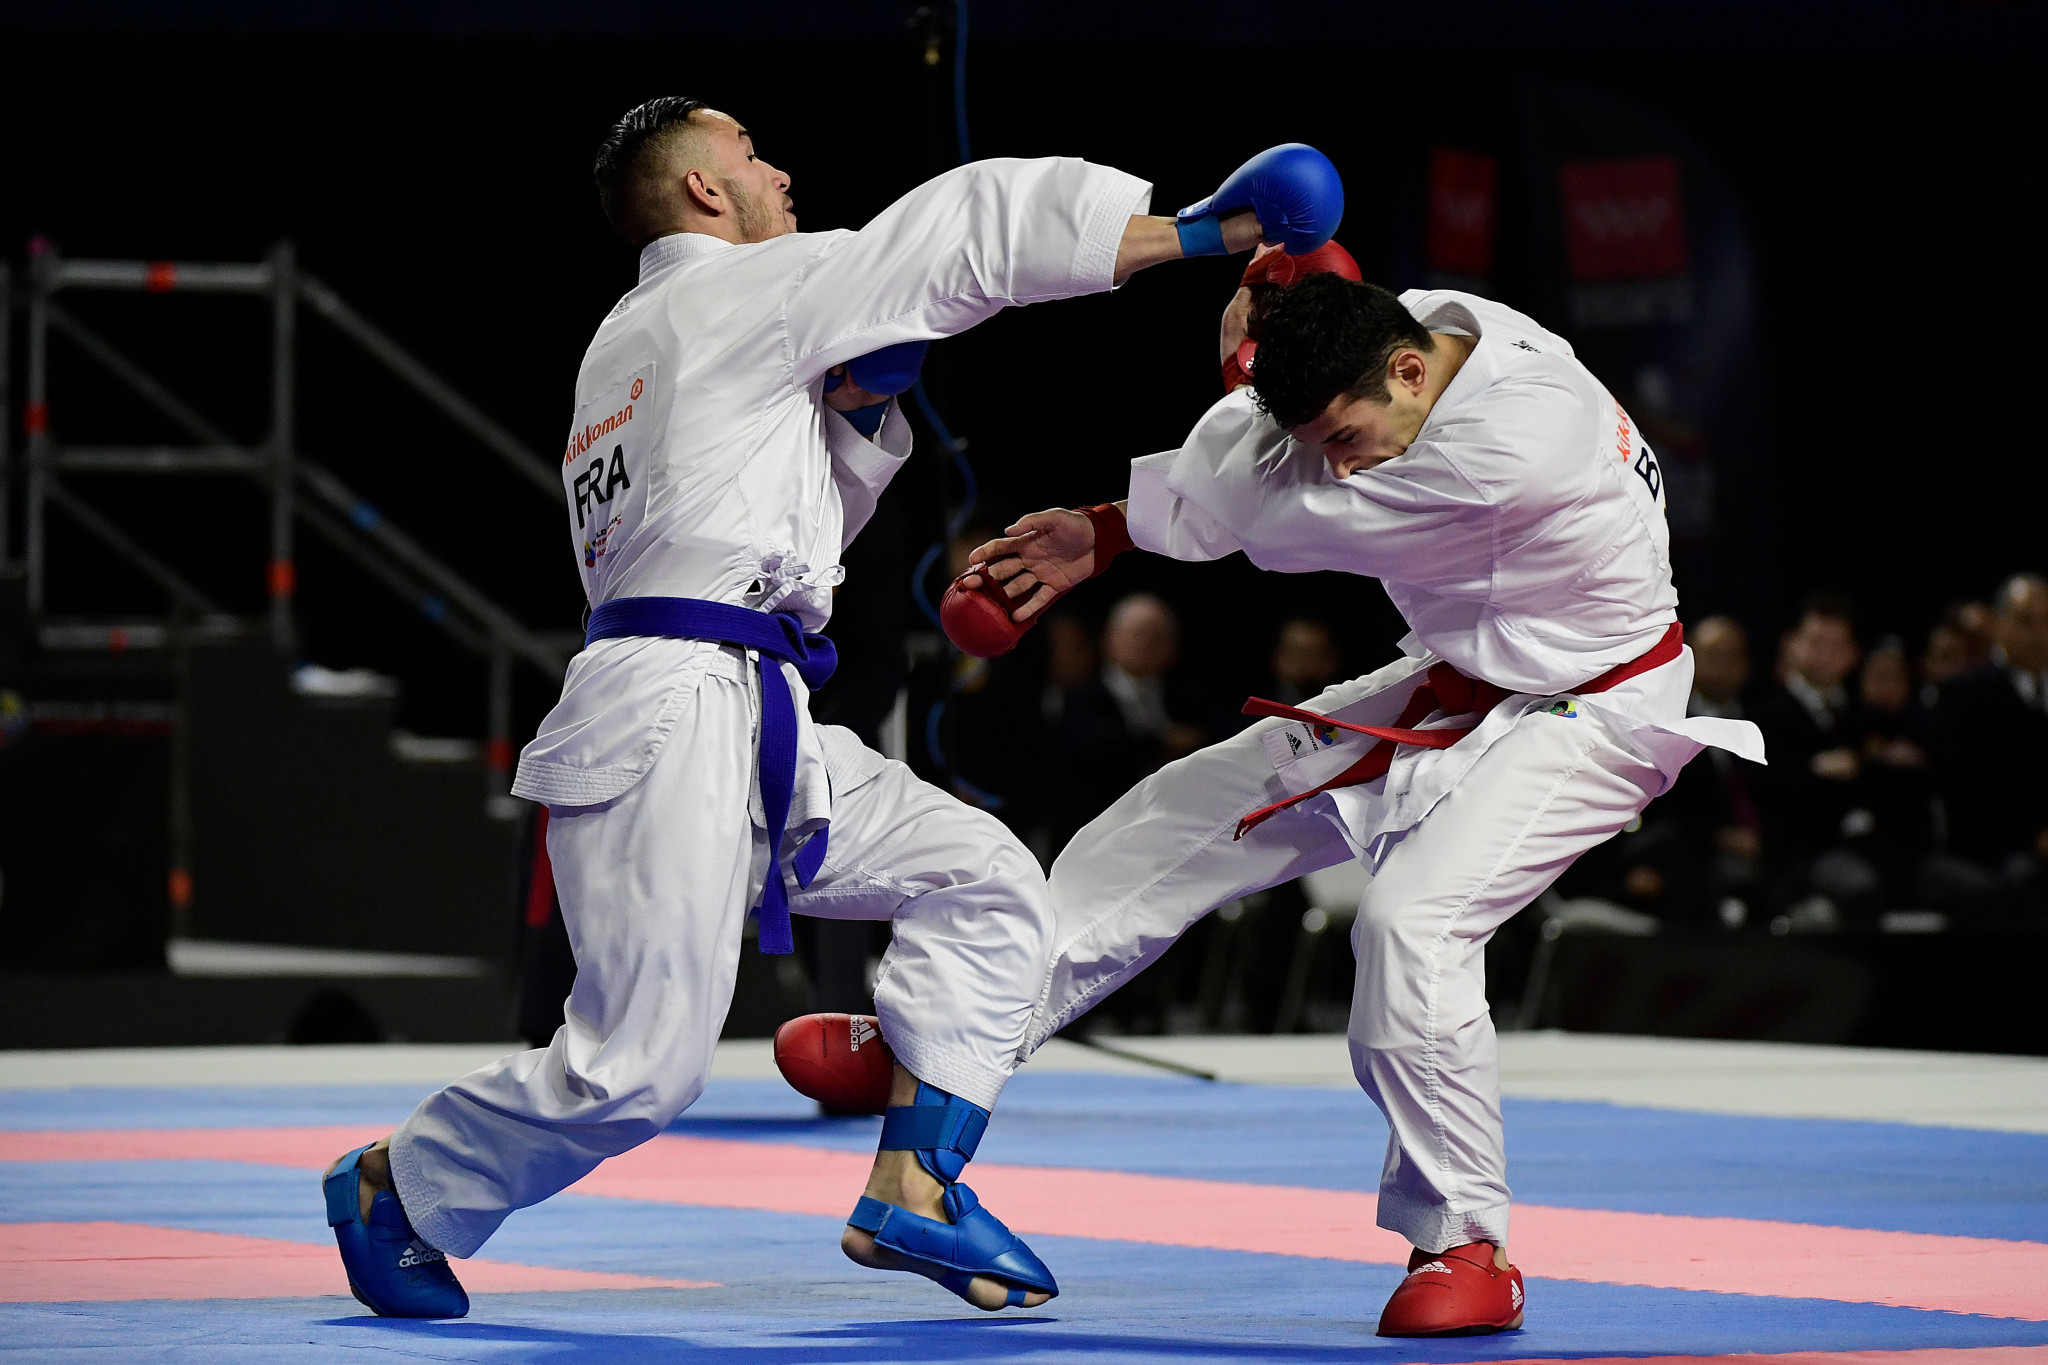 Karate World Championships: First day of medal action